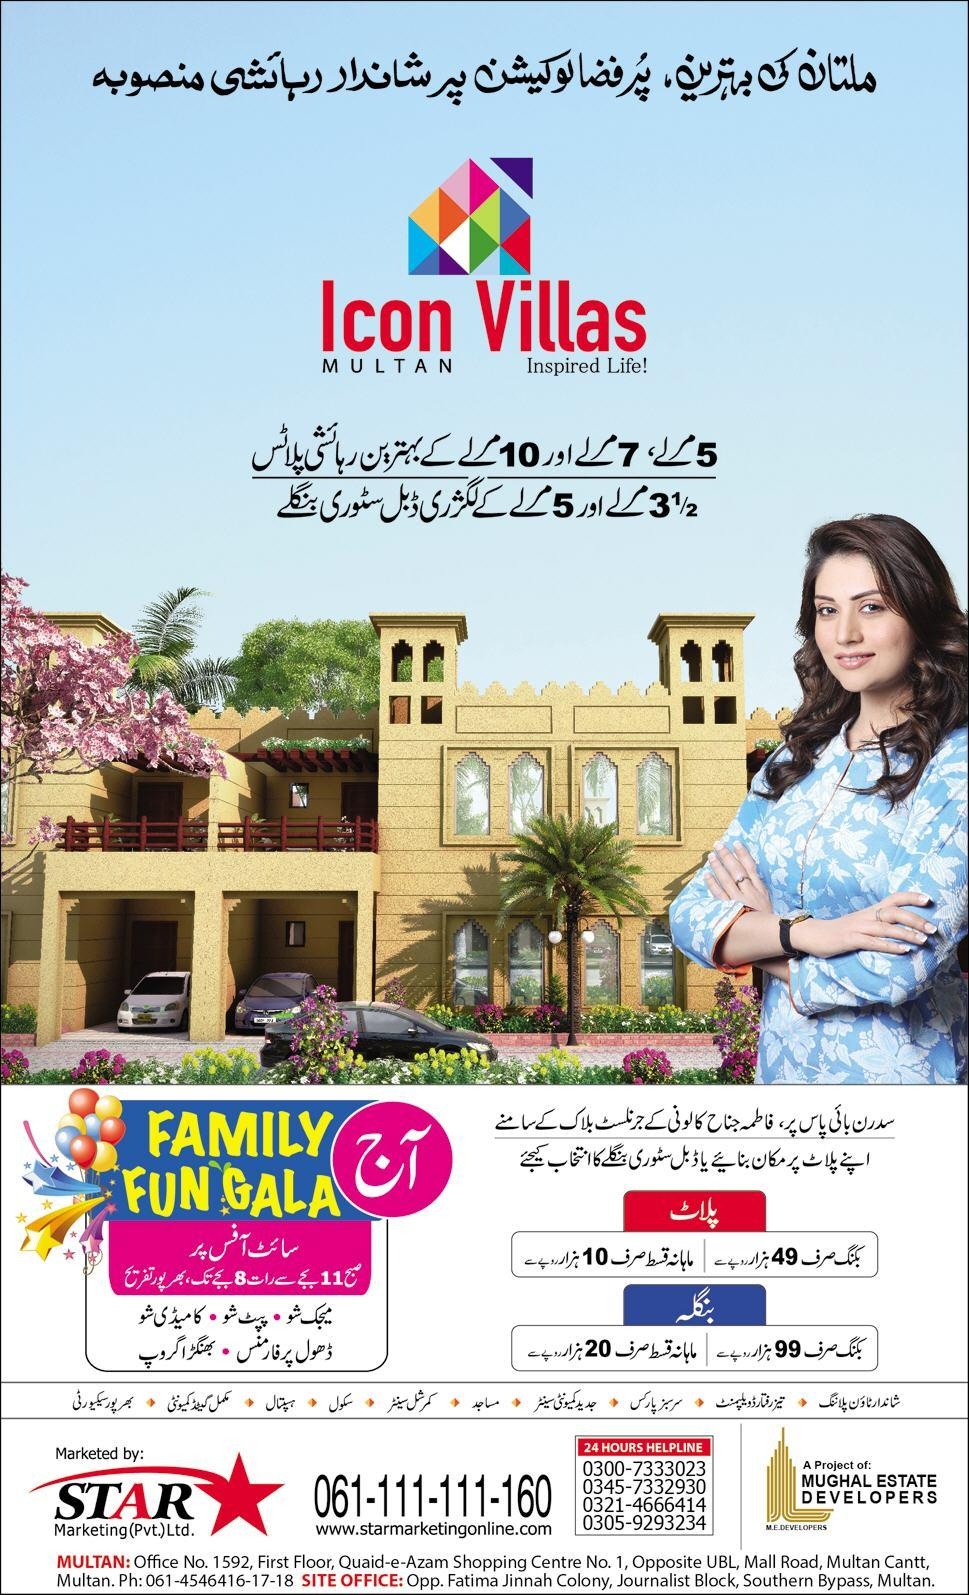 Icon Villas Multan Family Fun Gala 13-3-2016